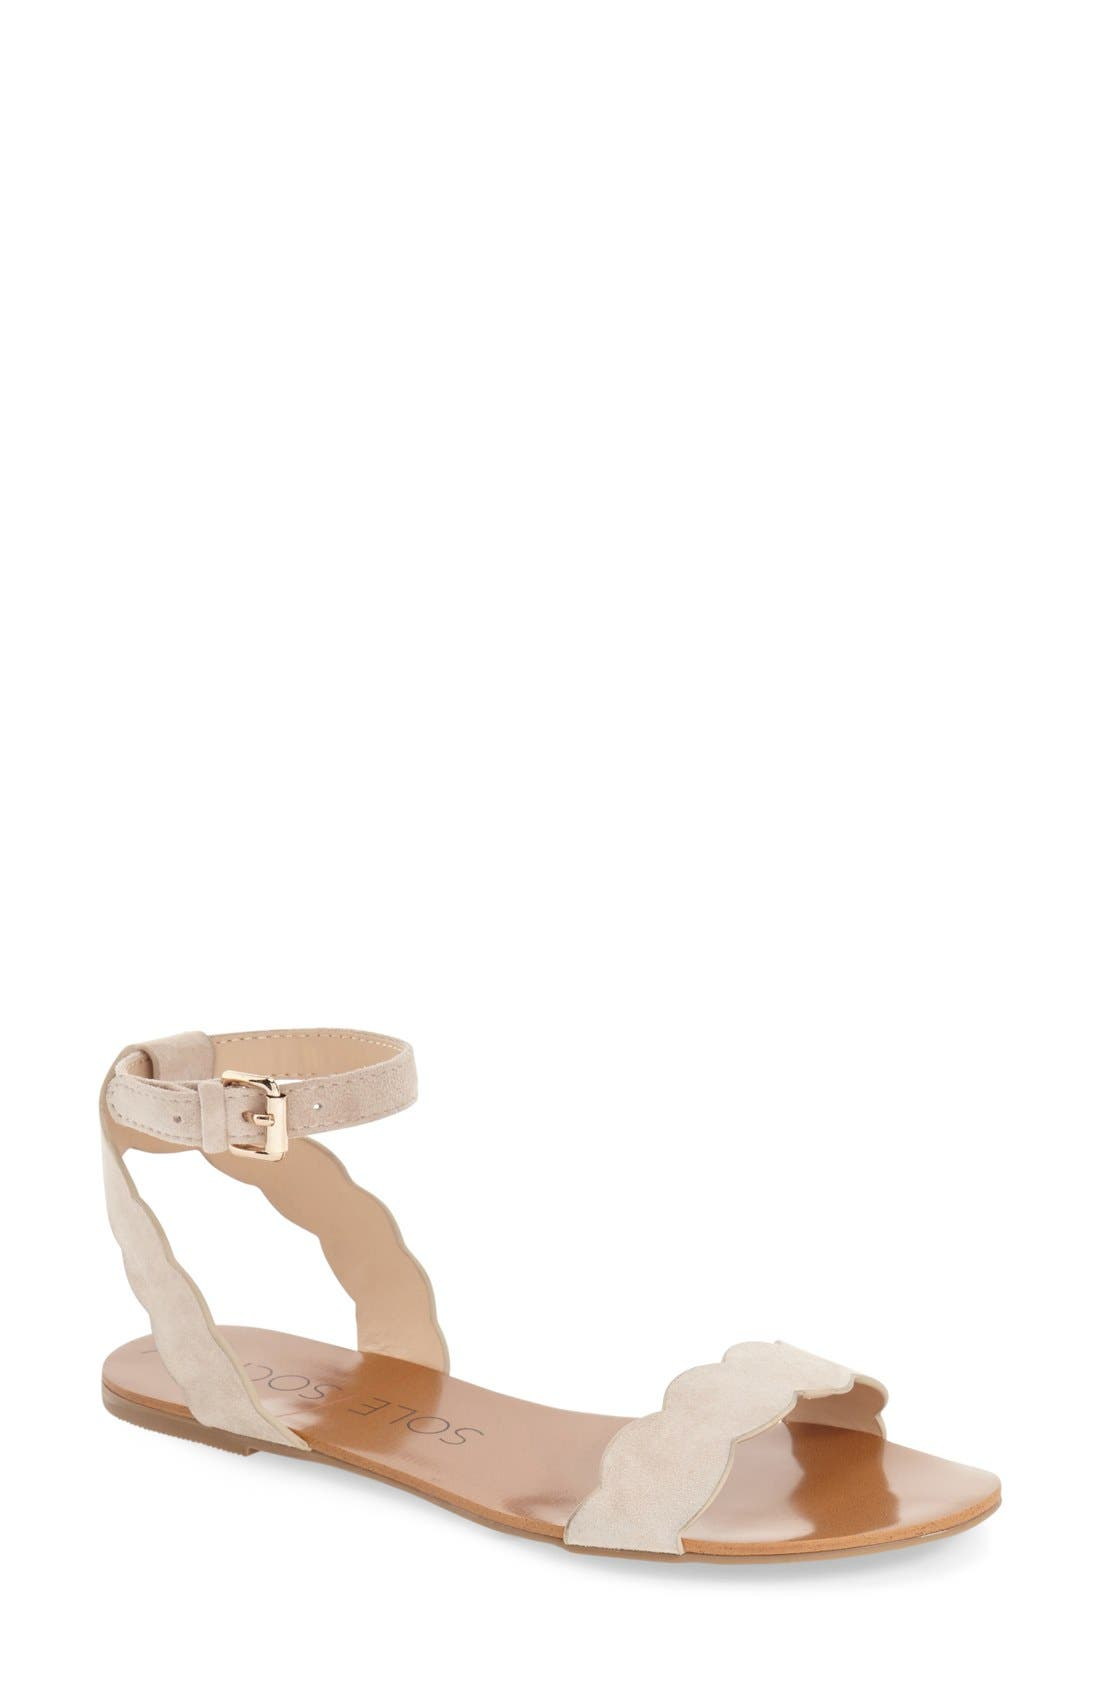 Sole Society 'Odette' Scalloped Ankle Strap Flat Sandal ...